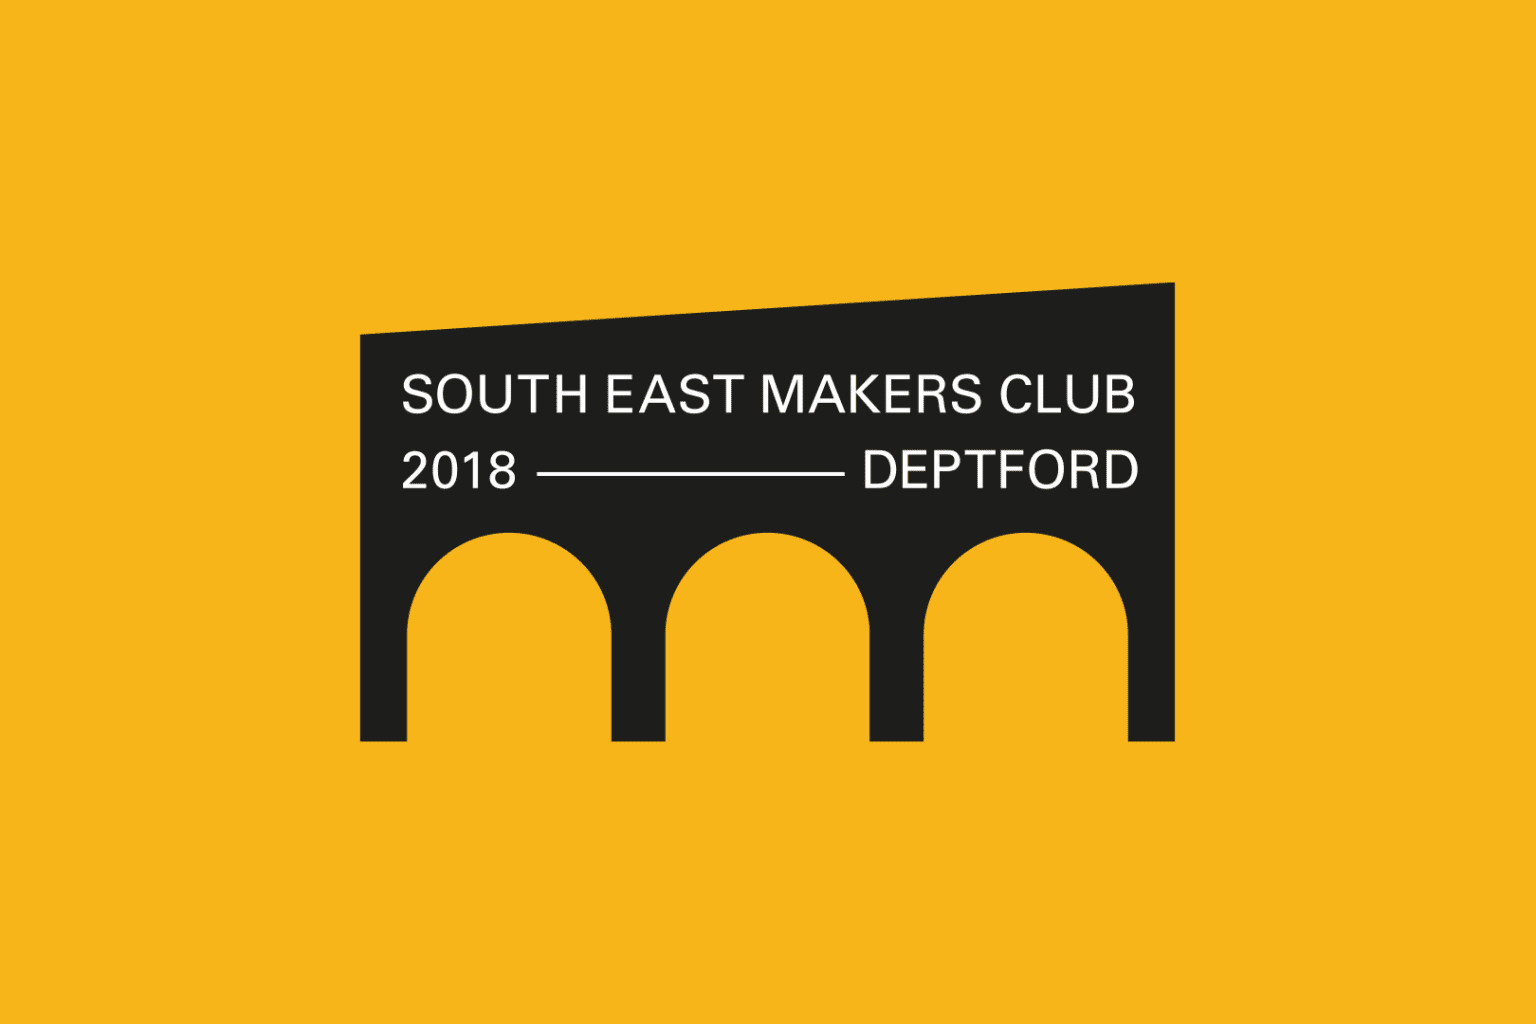 South East Makers Club